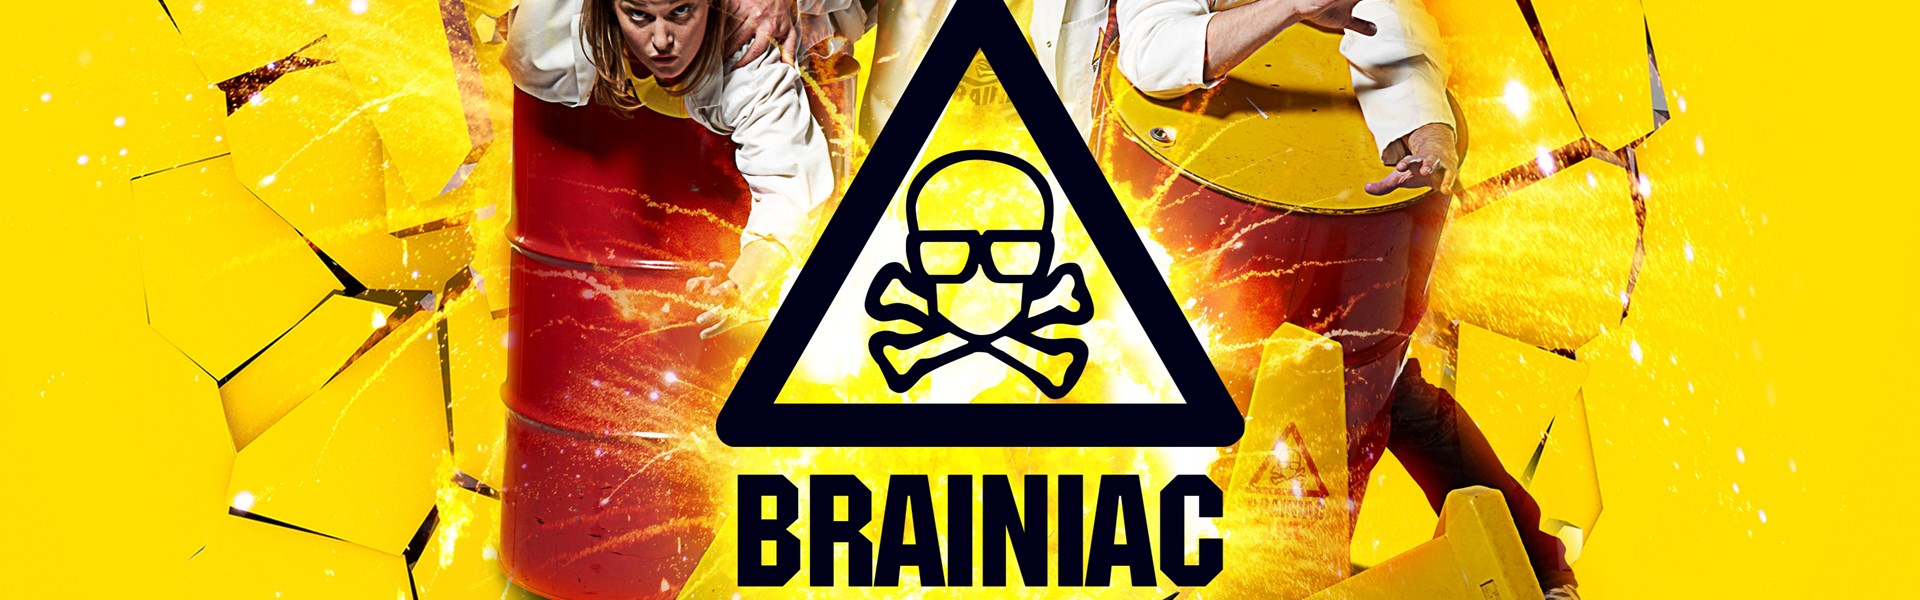 Brainiac Live! Science Abuse